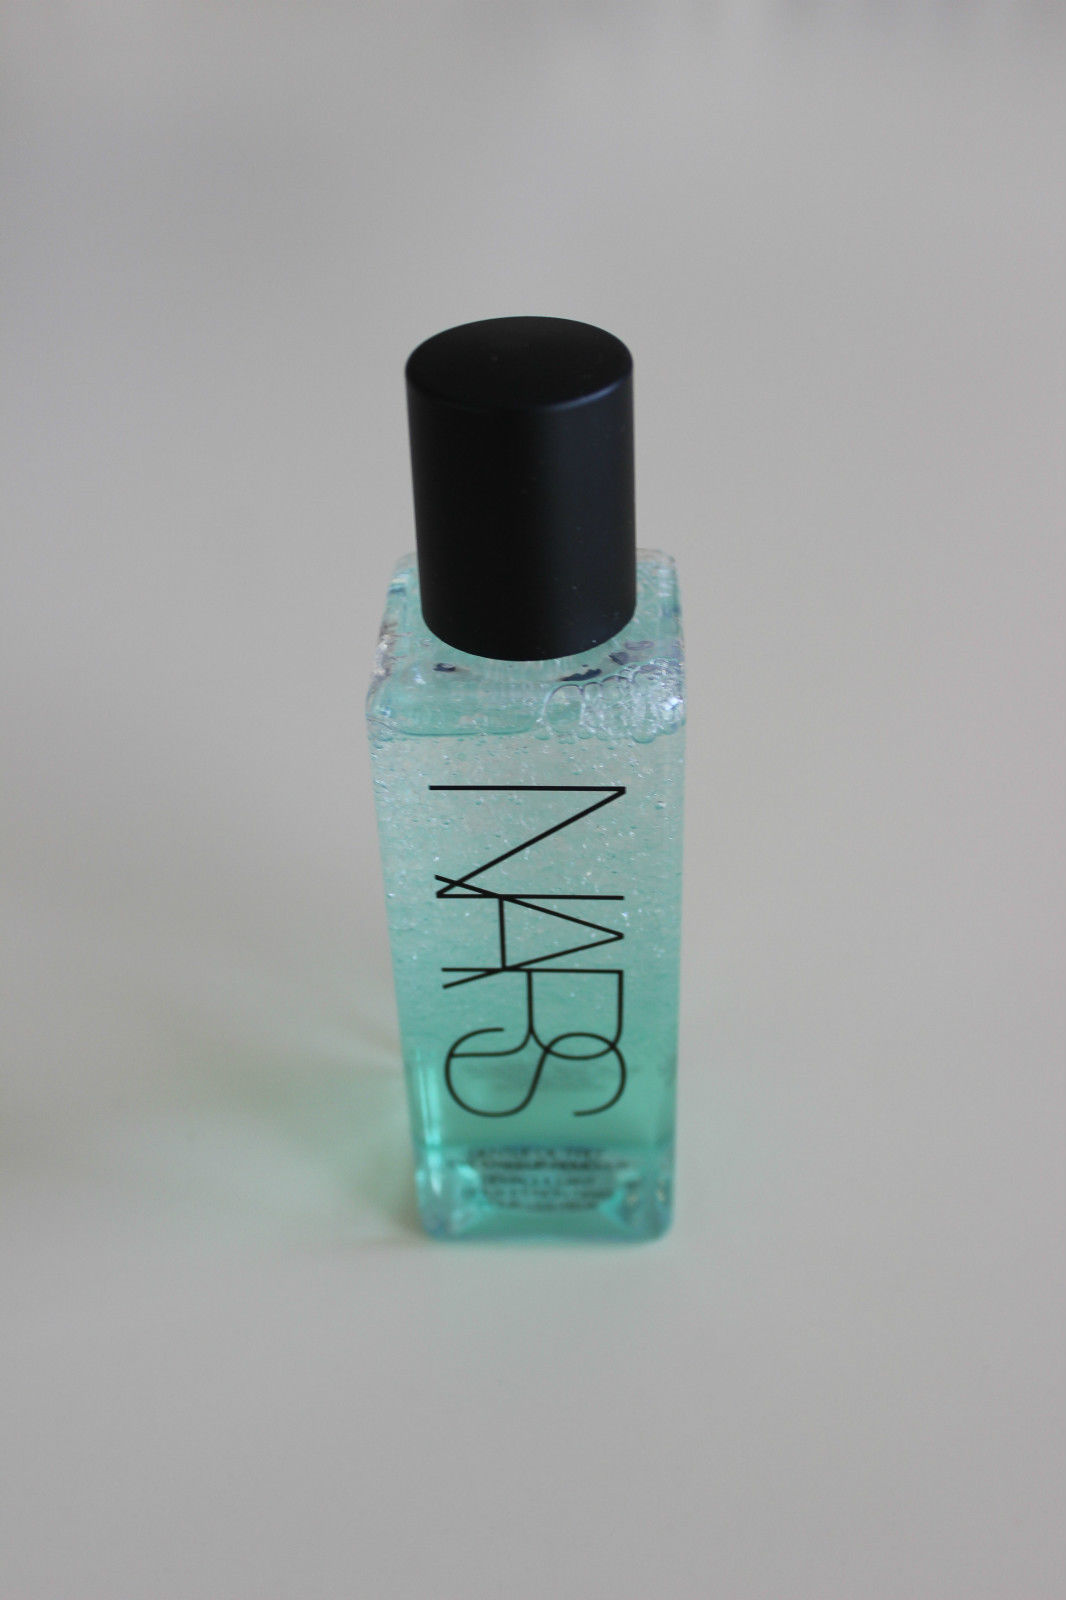 Nars Gentle Oil-Free Eye Makeup Remover Full and 49 similar items. S l1600